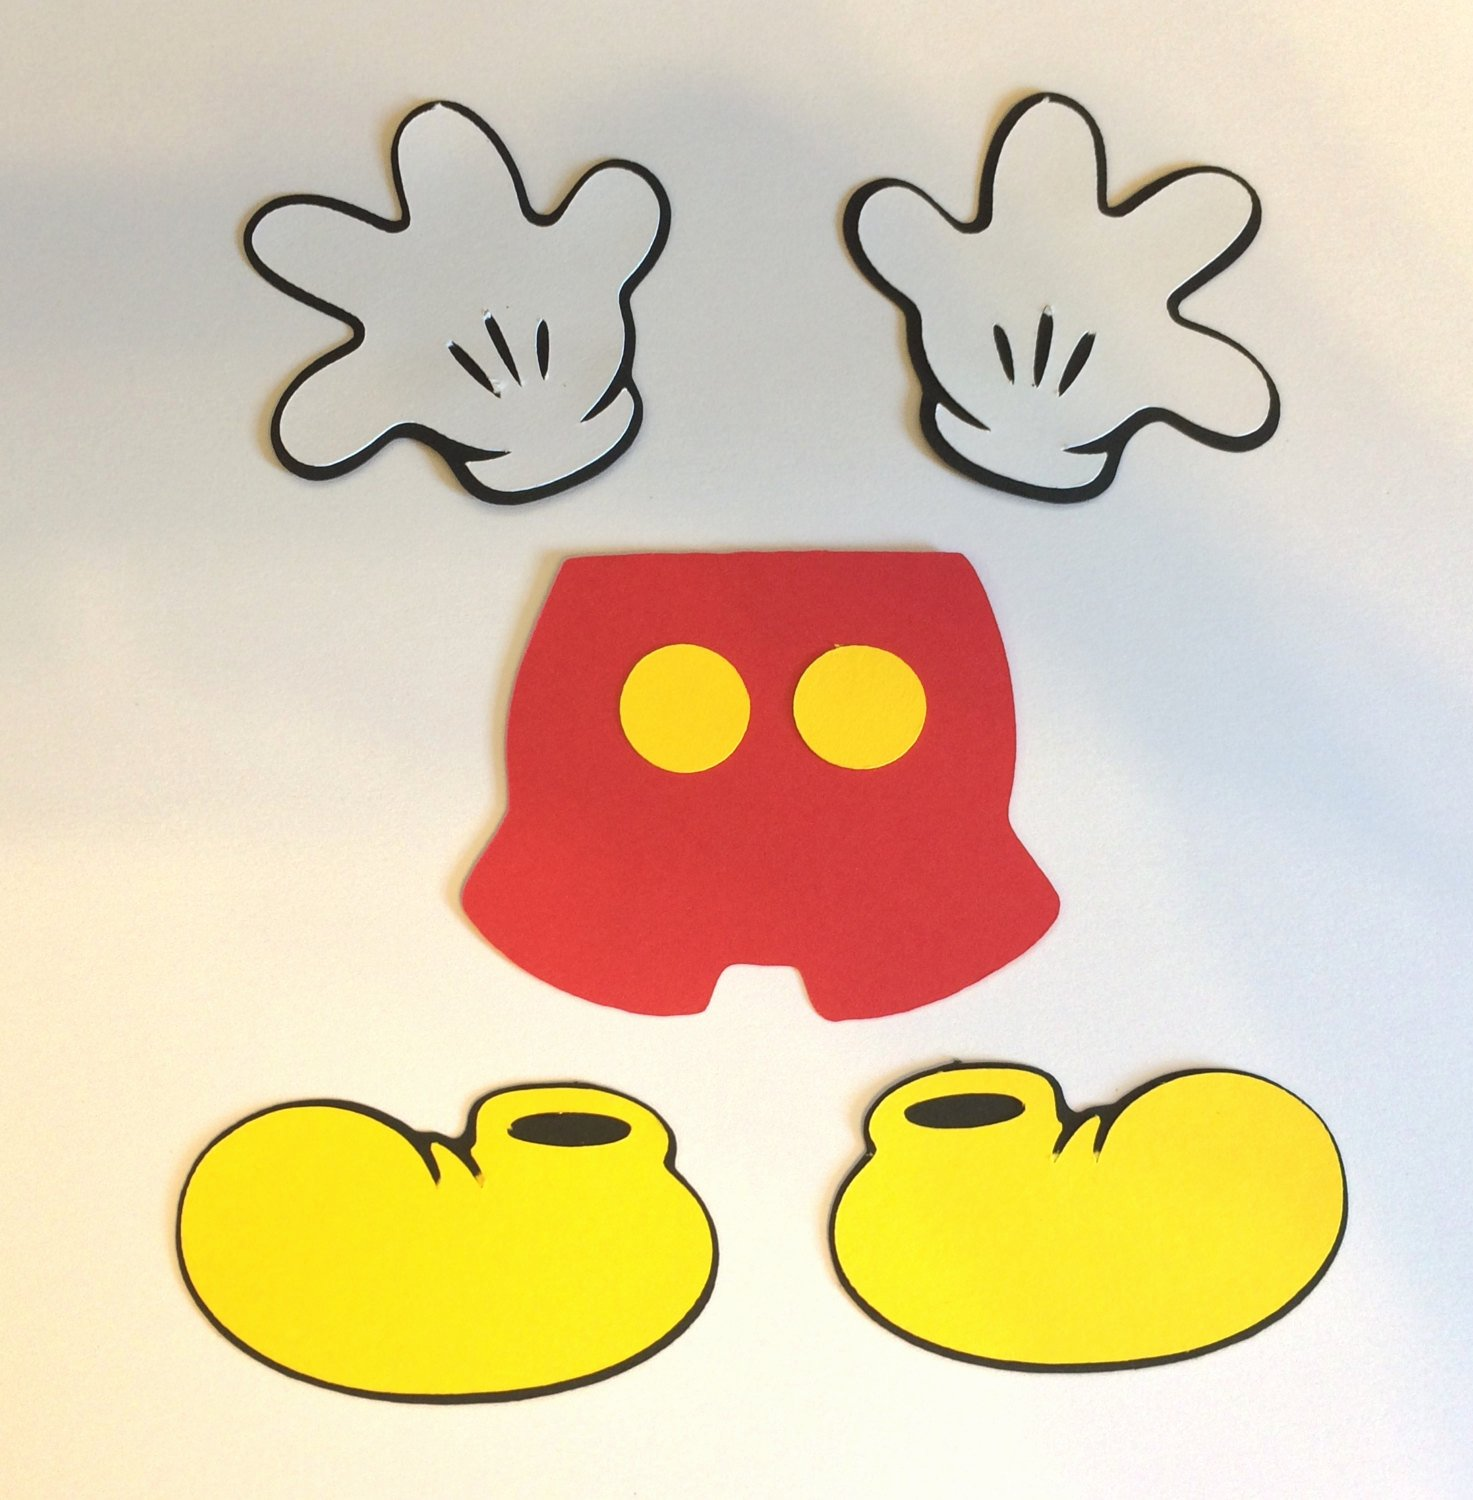 Mouse Cut Out Lovely Free Mickey Mouse Cut Out Download Free Clip Art Free